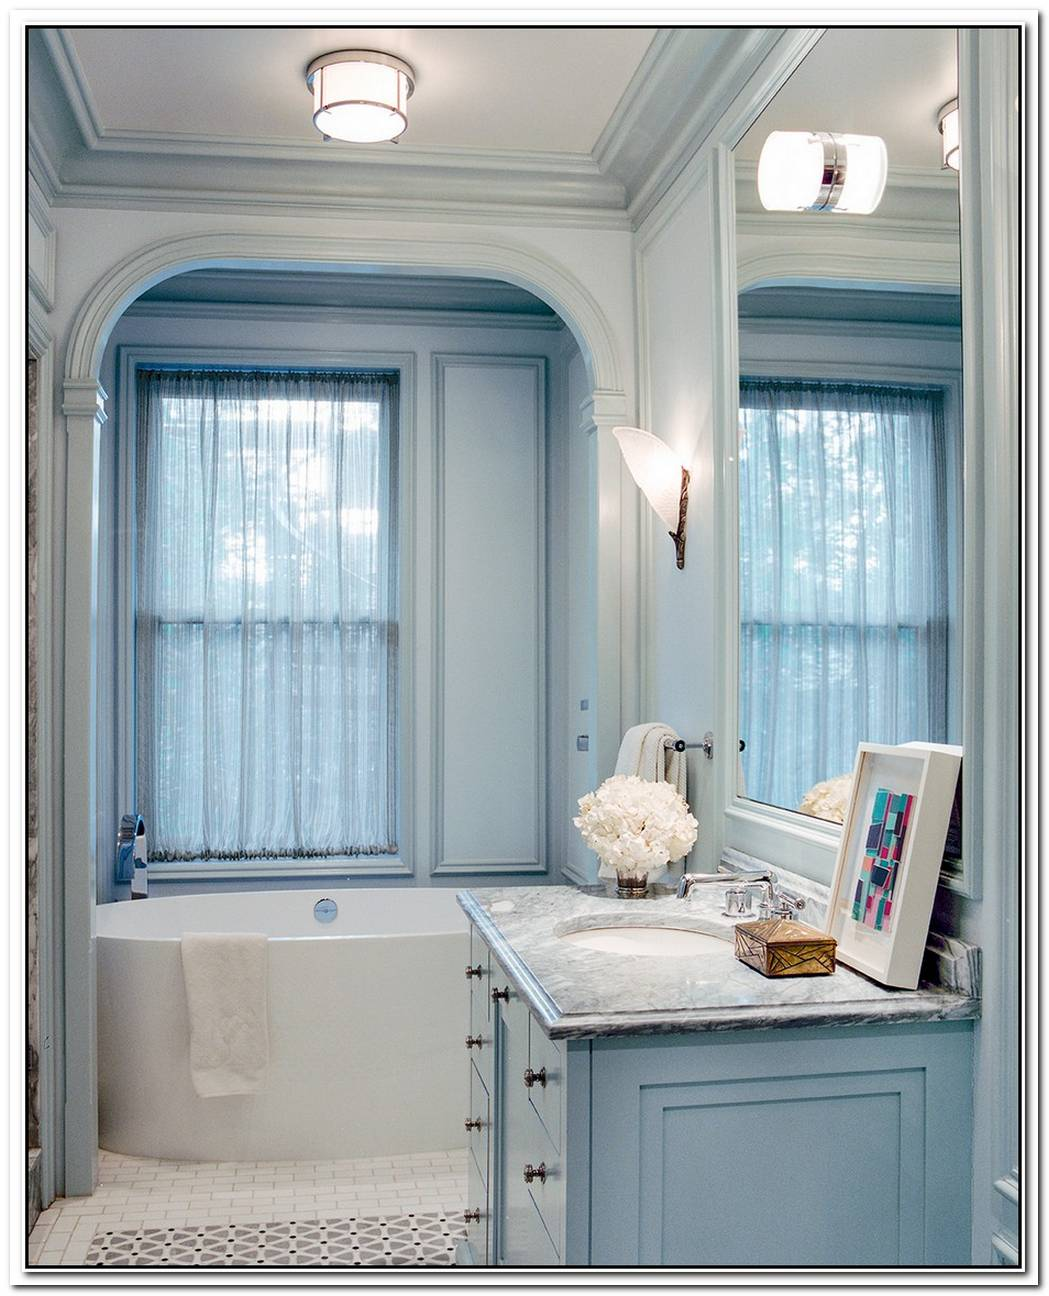 Things You Should Consider When Choosing The Bathroom Lighting